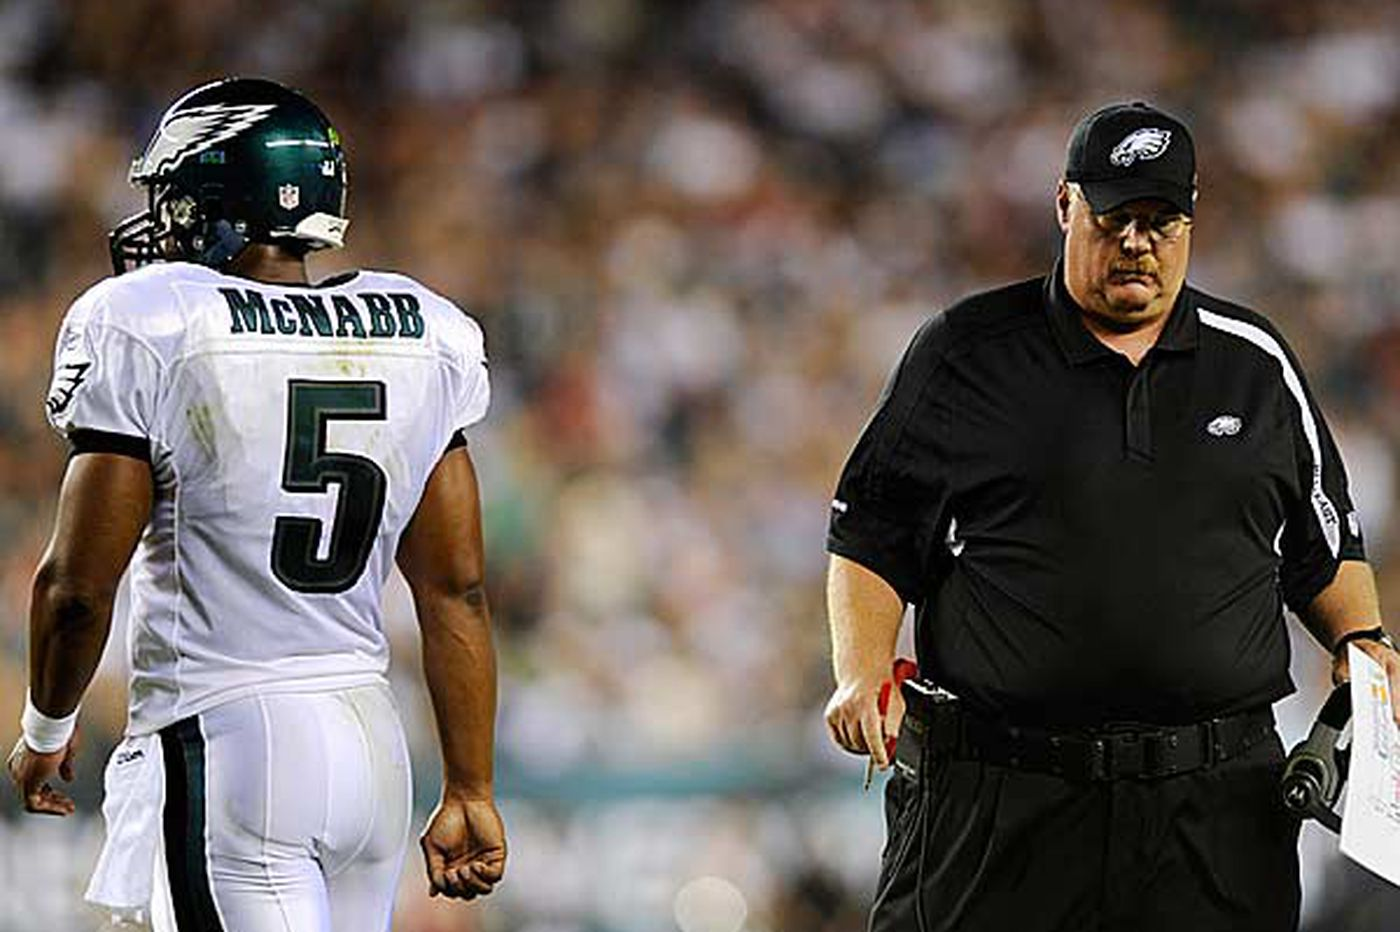 Neither Reid nor McNabb did much good after parting